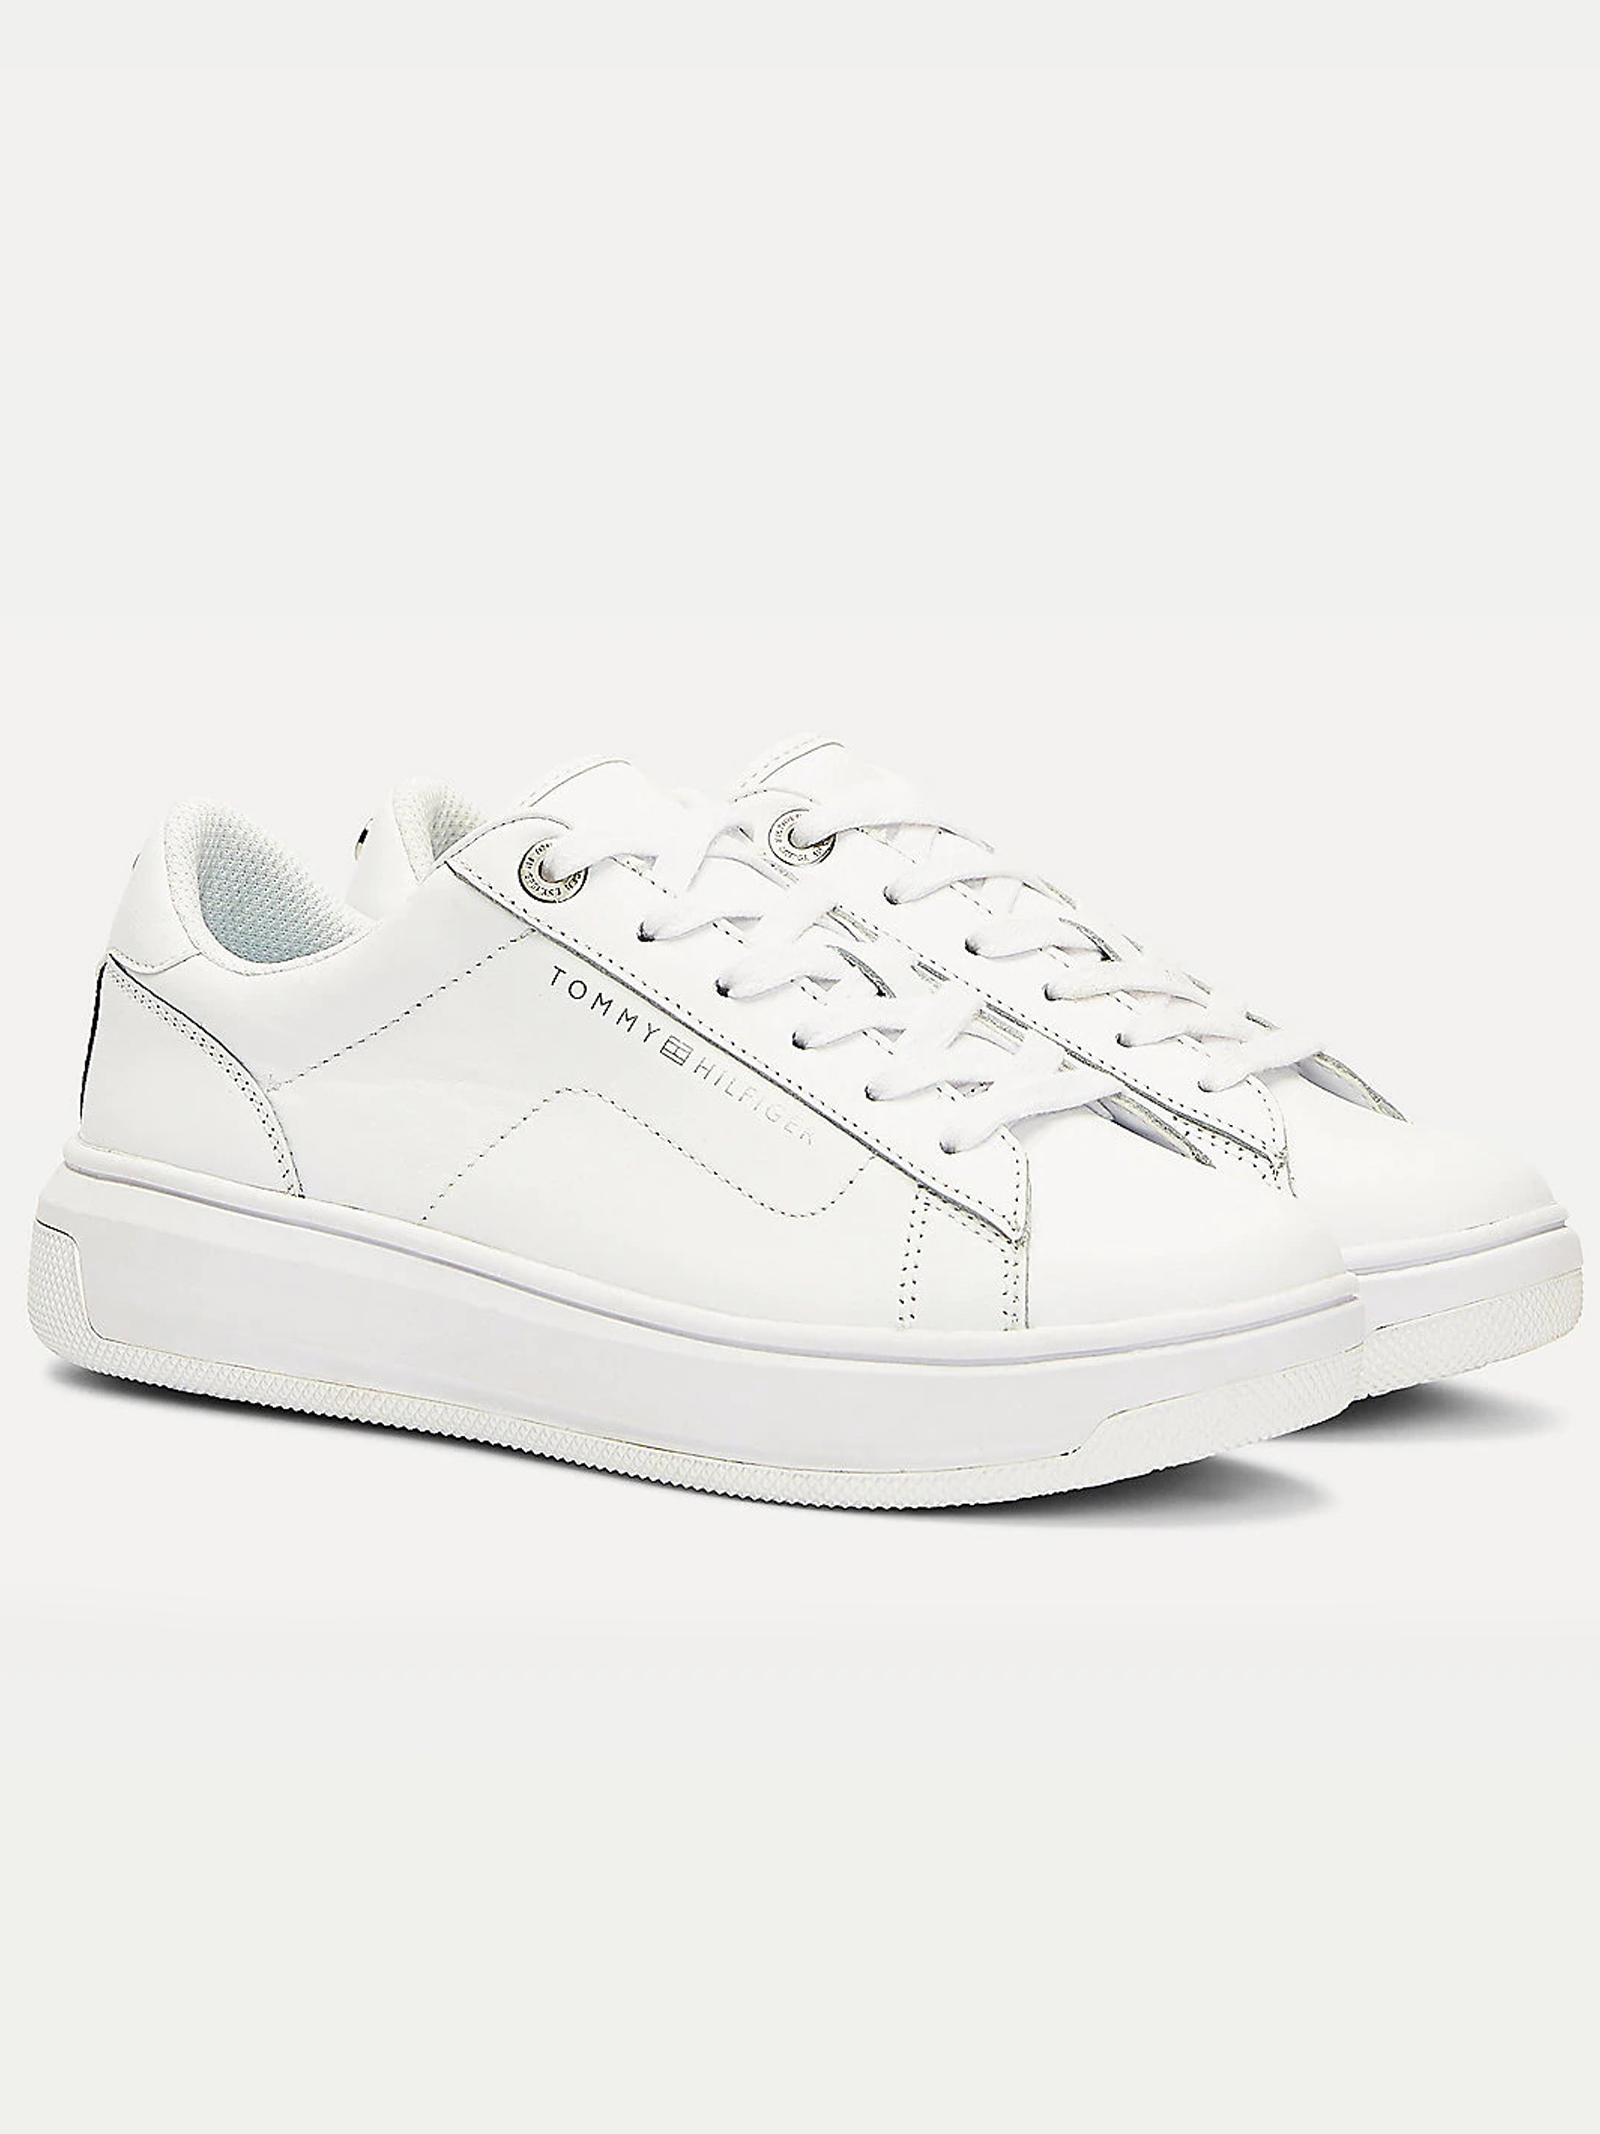 TOMMY HILFIGER LEATHER CUPSOLE sneakers